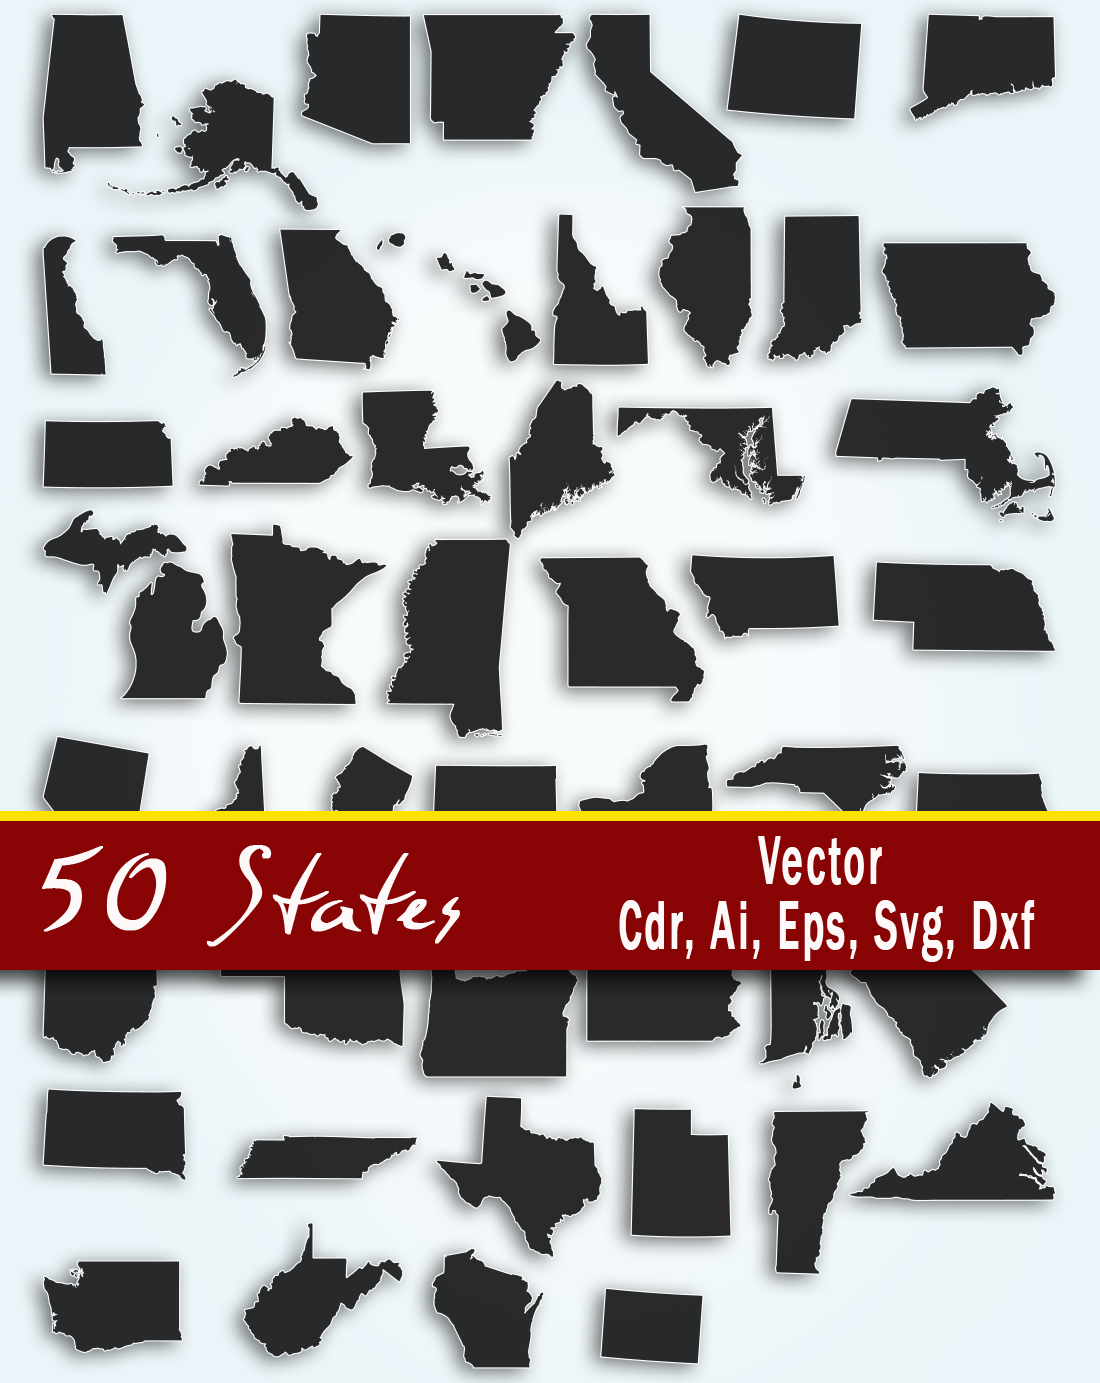 Download Free All U S States Vector Art Graphic By Vector City Skyline for Cricut Explore, Silhouette and other cutting machines.